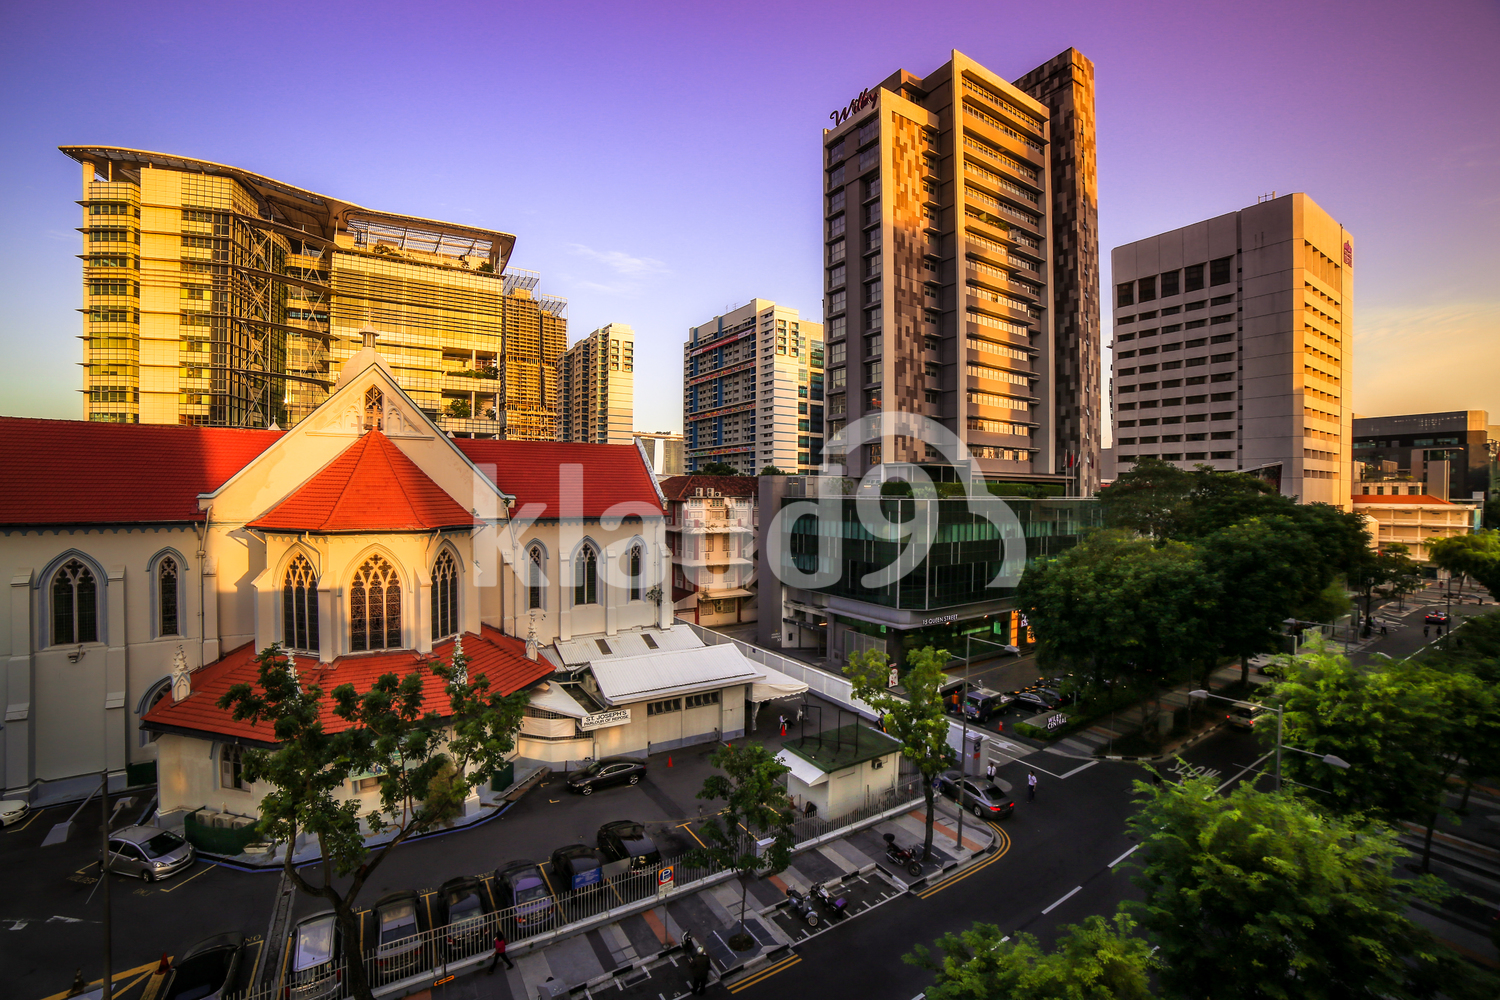 Waterloo Street buildings in Singapore